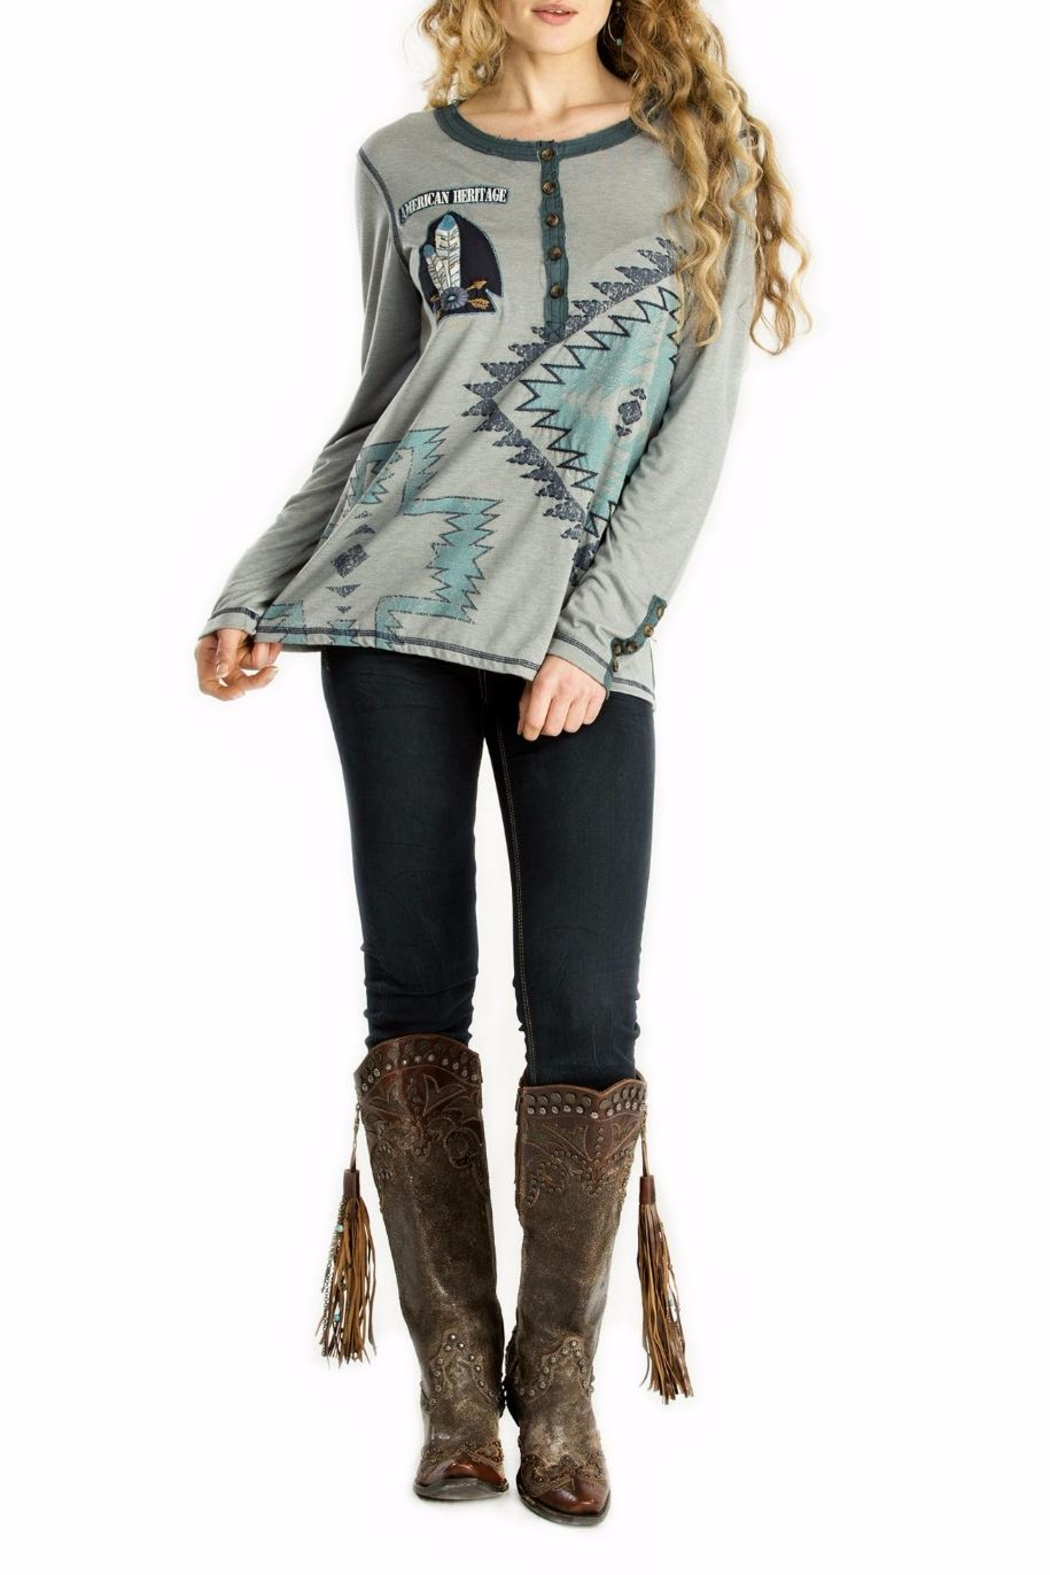 Double D Ranchwear American Heritage Tunic Top - Main Image